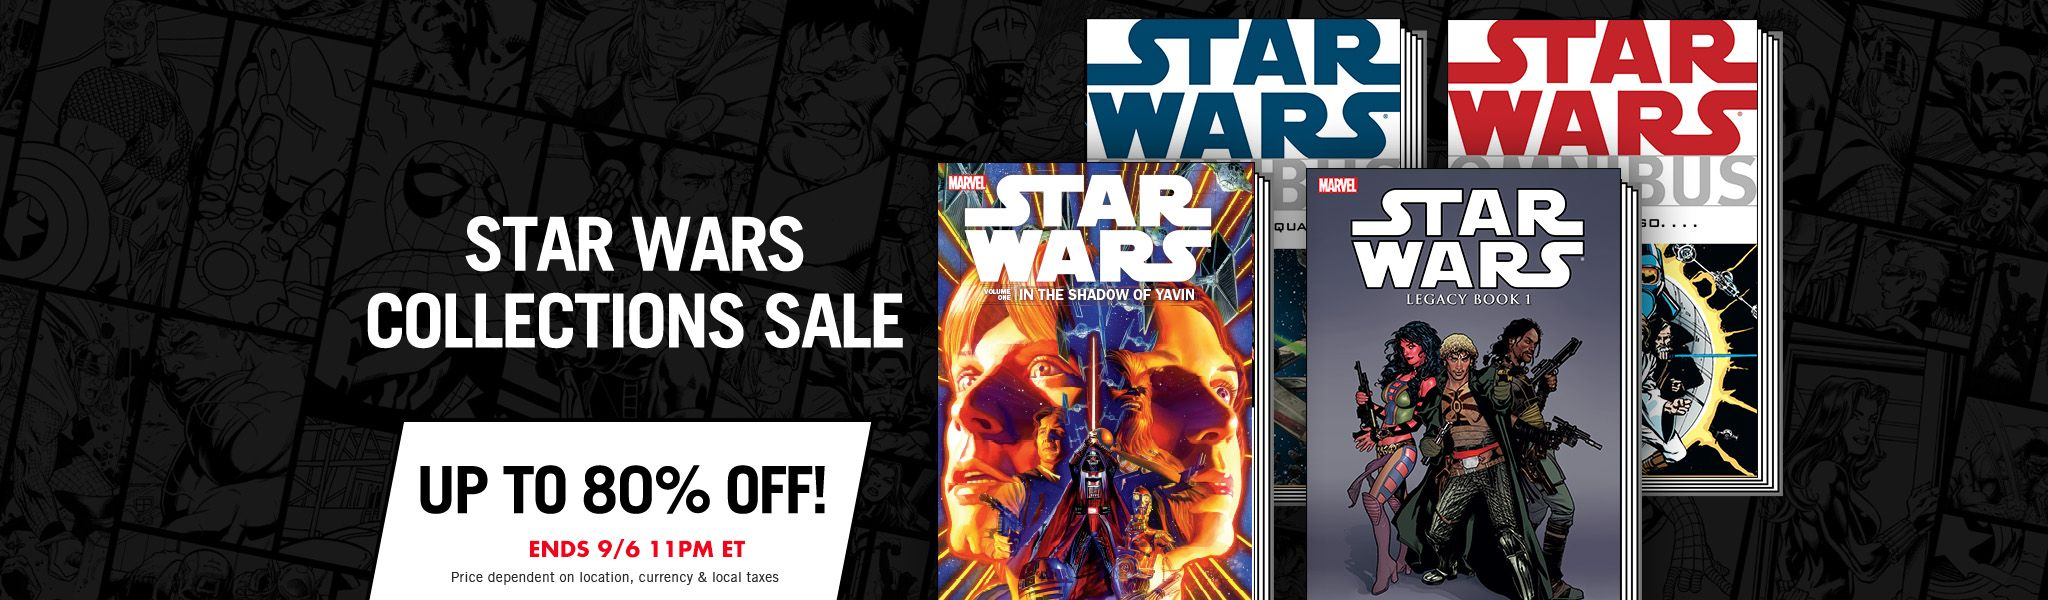 ComiXology Puts Star Wars Comics On Sale for Force Friday